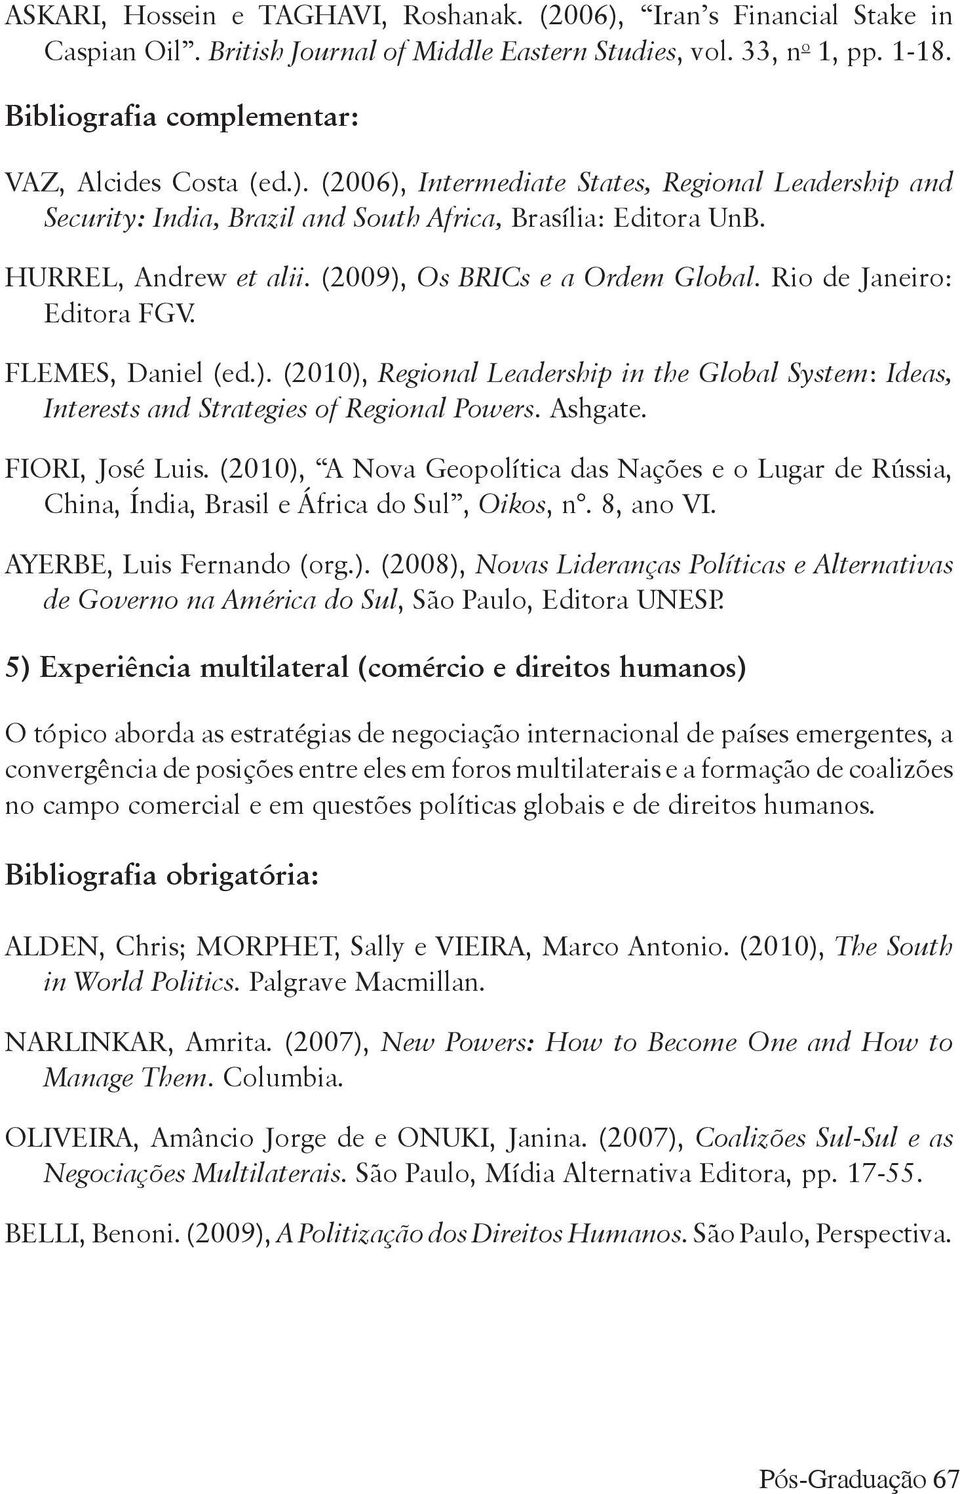 (2009), Os BRICs e a Ordem Global. Rio de Janeiro: Editora FGV. FLEMES, Daniel (ed.). (2010), Regional Leadership in the Global System: Ideas, Interests and Strategies of Regional Powers. Ashgate.